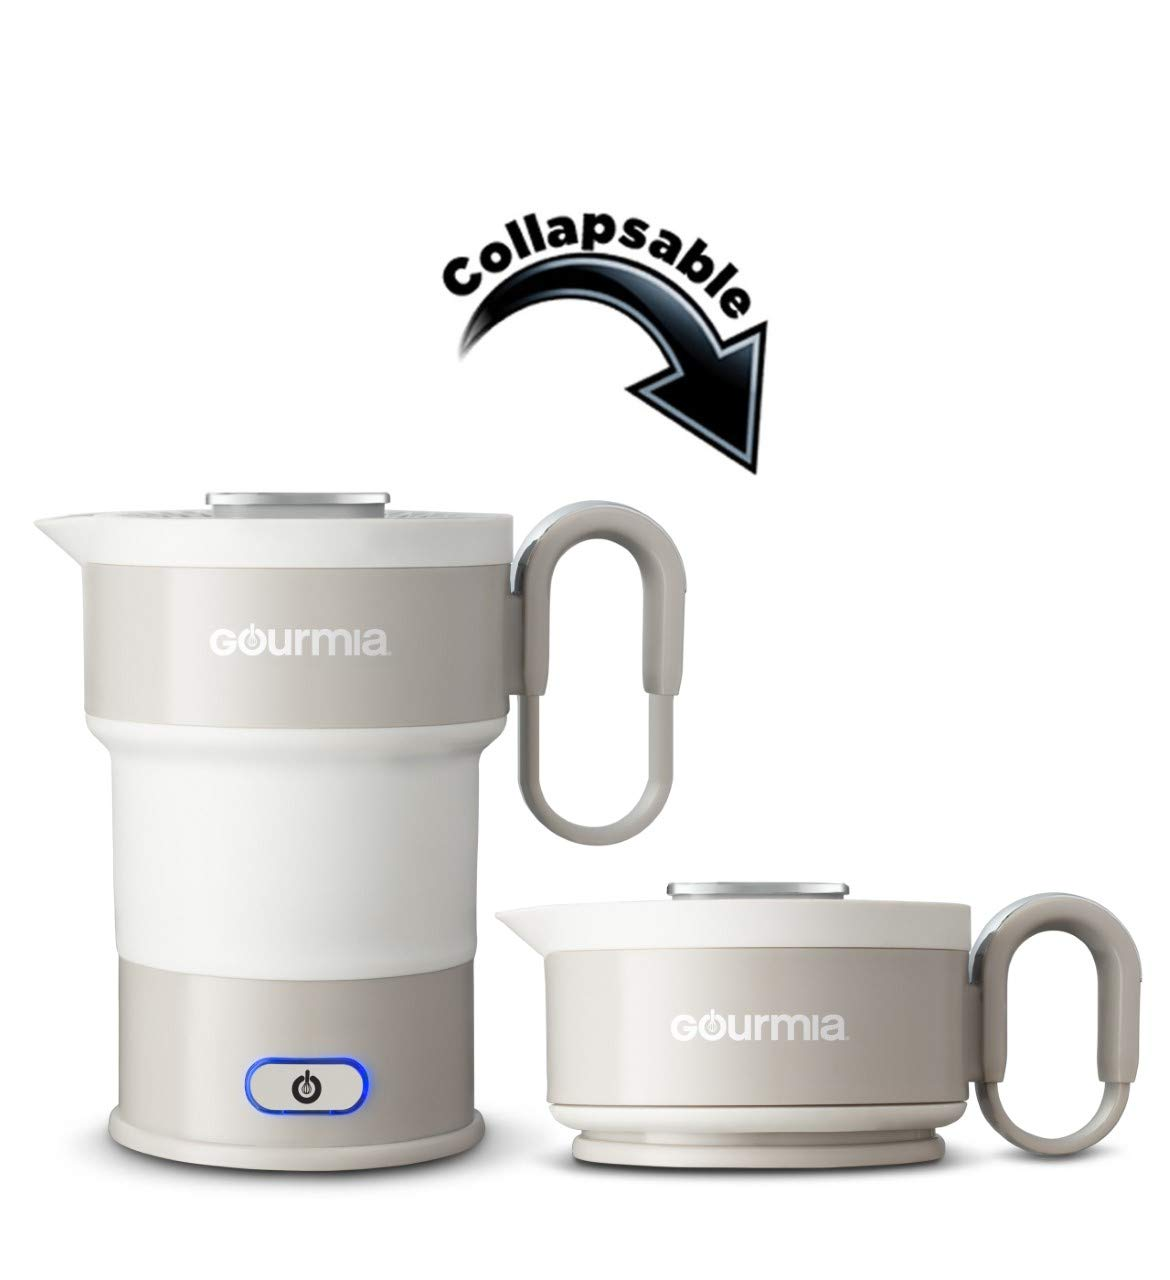 Gourmia GK348 Electric Collapsible Travel Kettle - Foldable & Portable - Fast Boil - Easy Storage - Water Boiler For Coffee, Tea & More - Food Grade Silicone - Boil Dry Protection -20 oz capacity - Grey